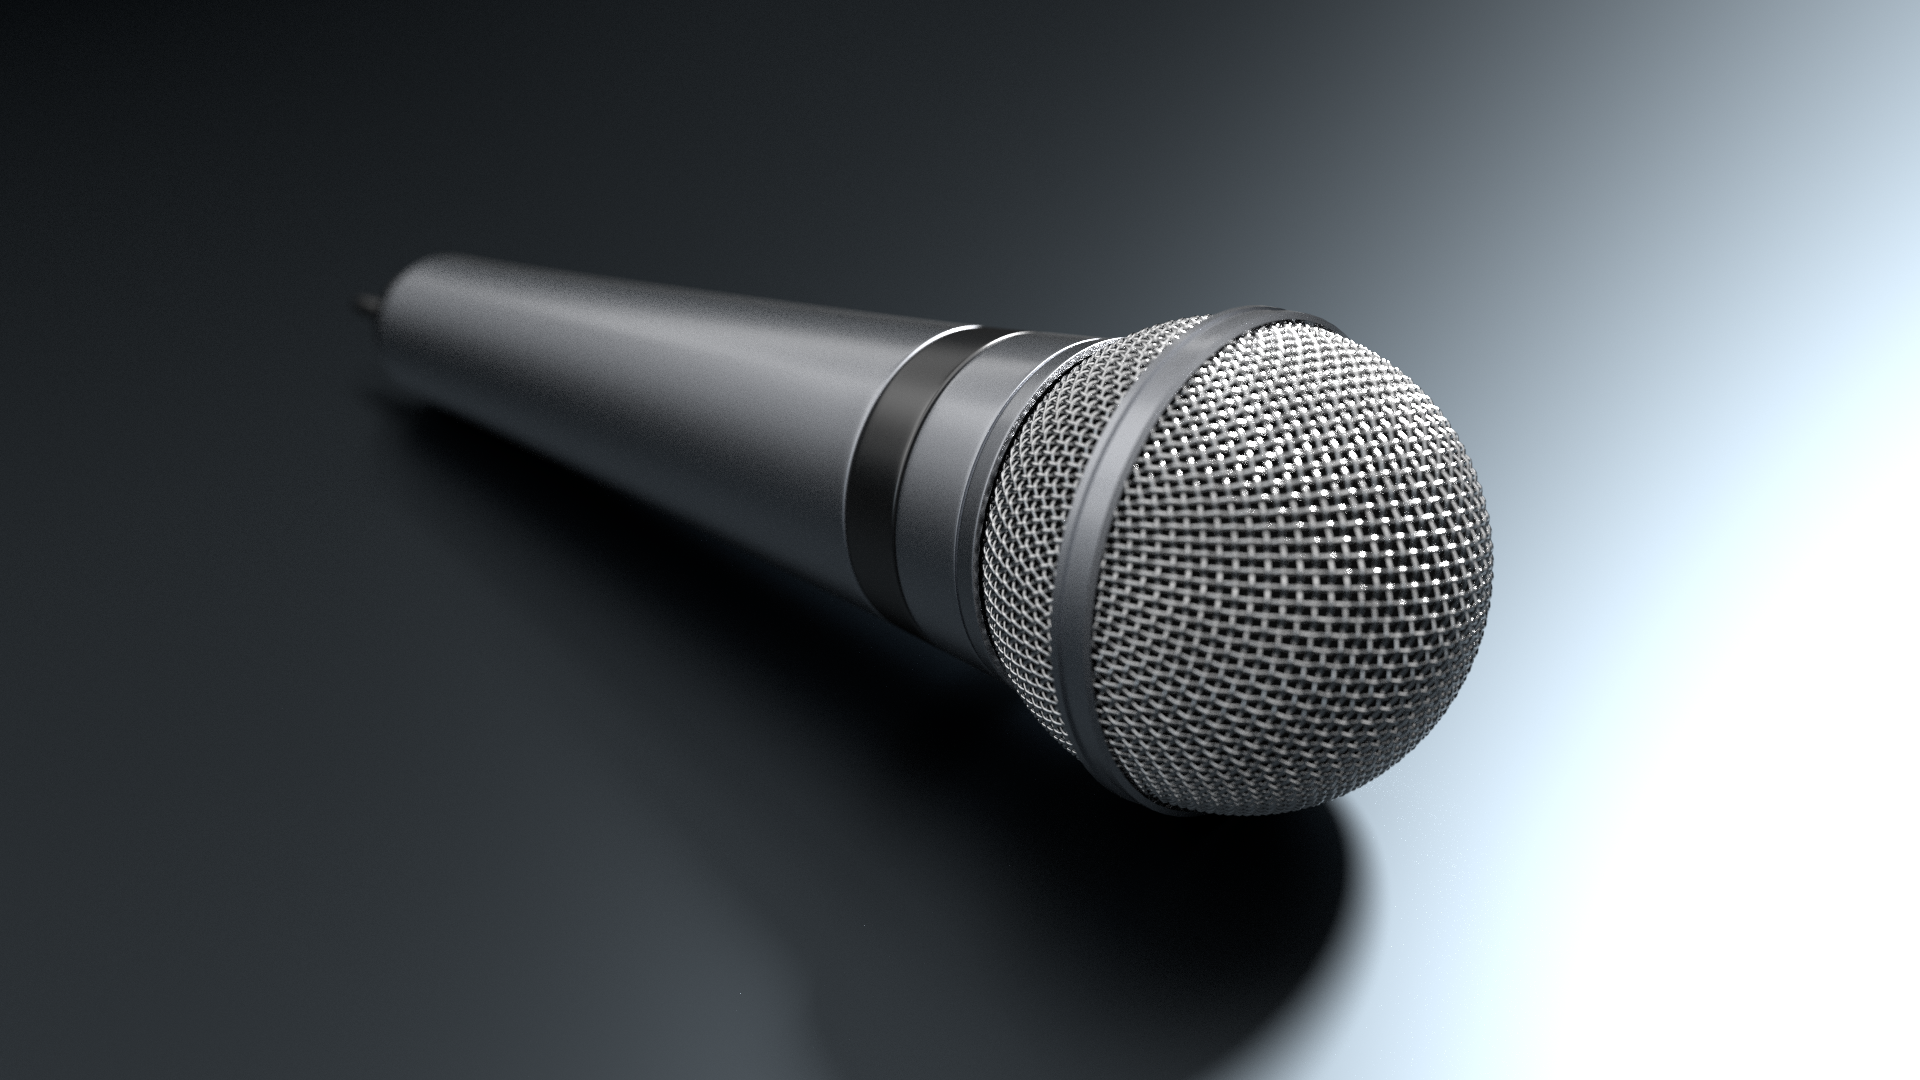 3D Model - Microphone 01 by fabioskol